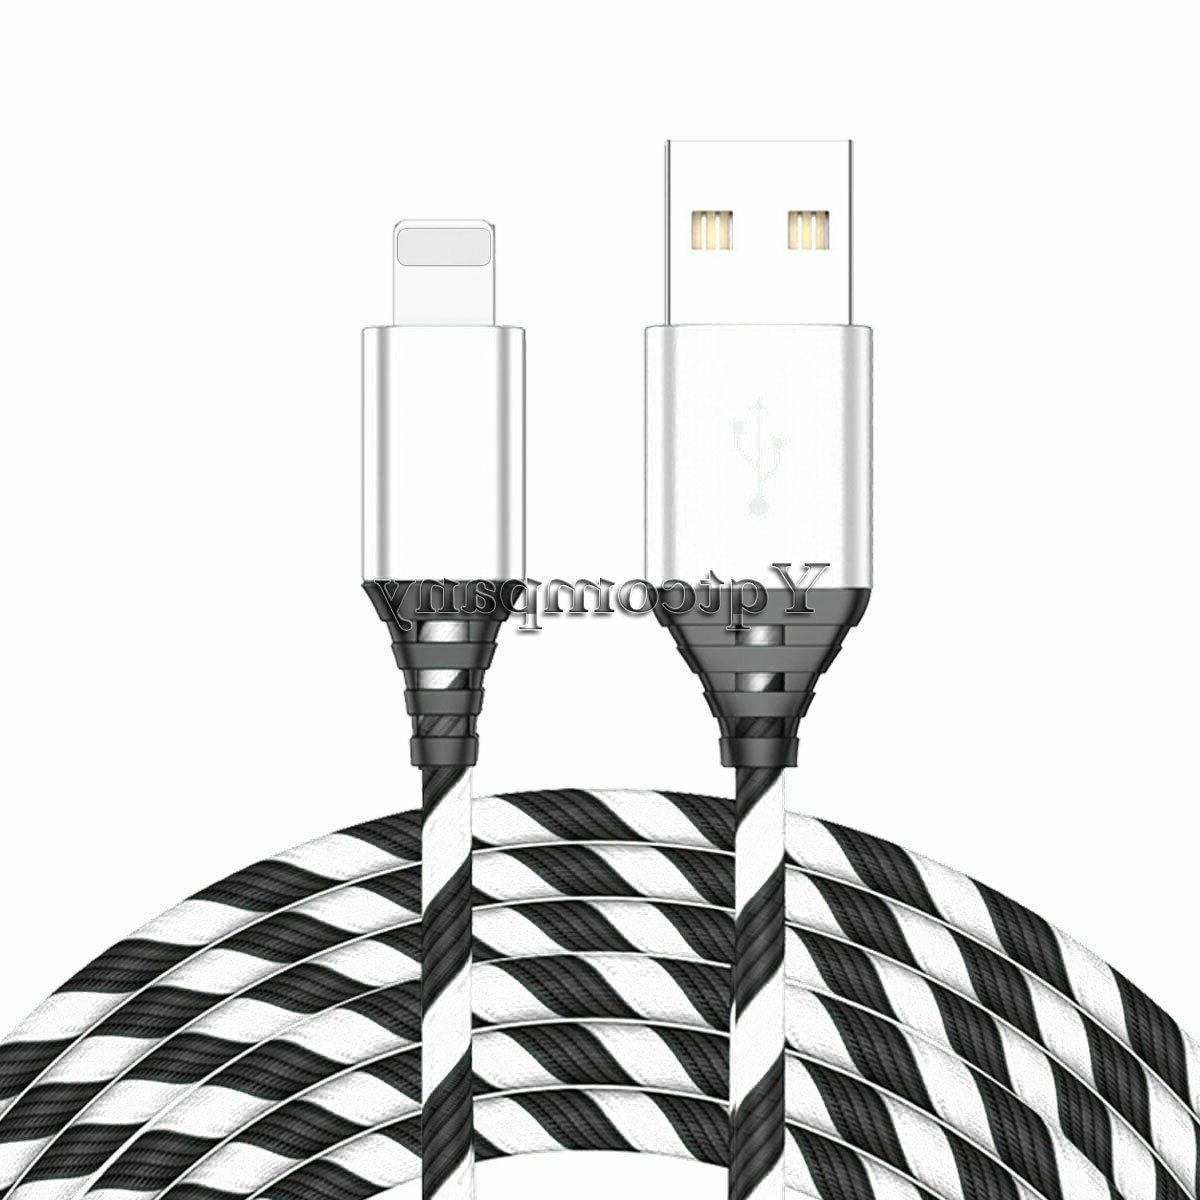 4 10 Lightning Cable iPhone plus Charger Cord